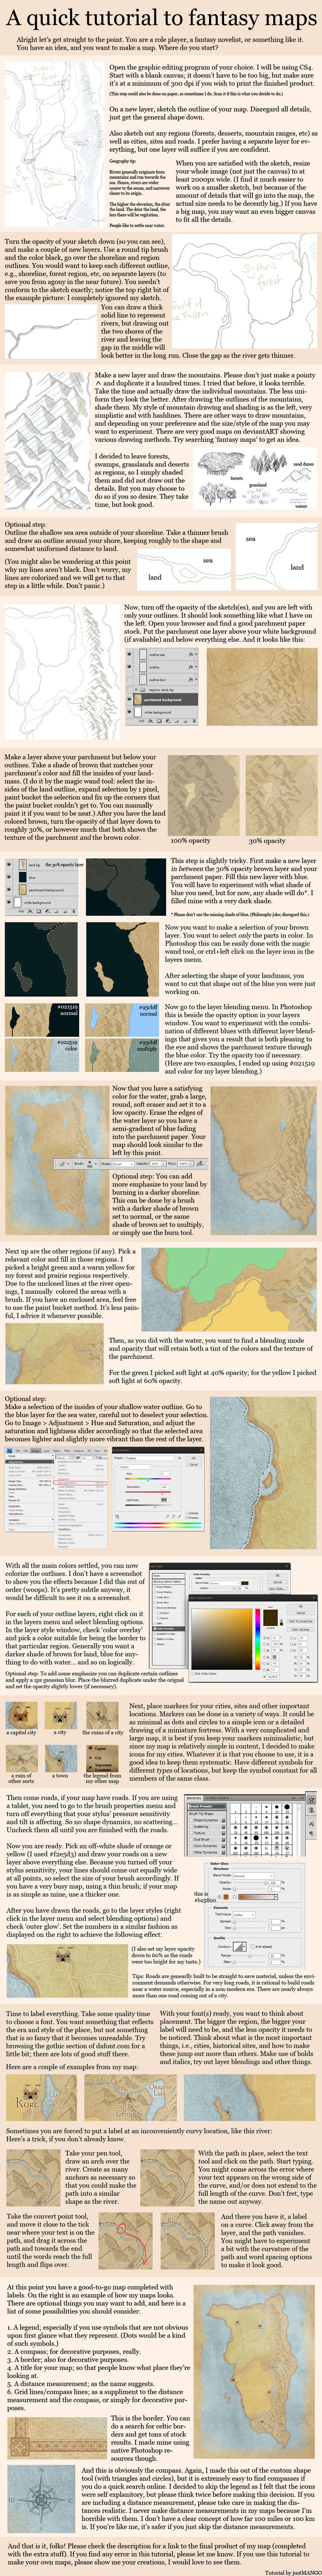 A quick tutorial to fantasy maps and cartography by justMANGO